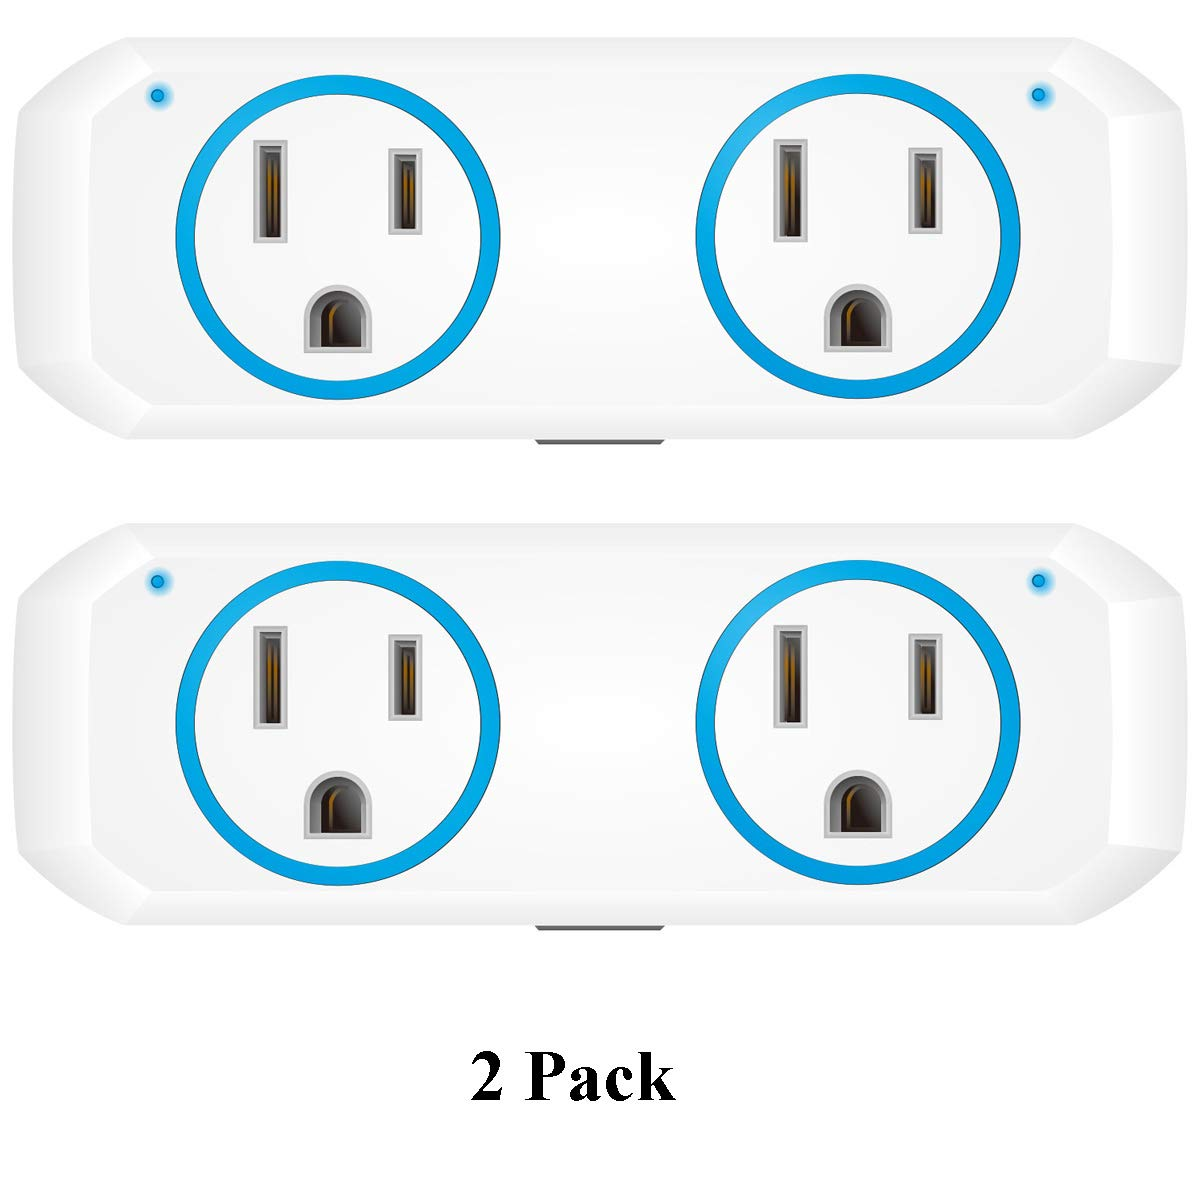 These Wifi Plugs Are Great